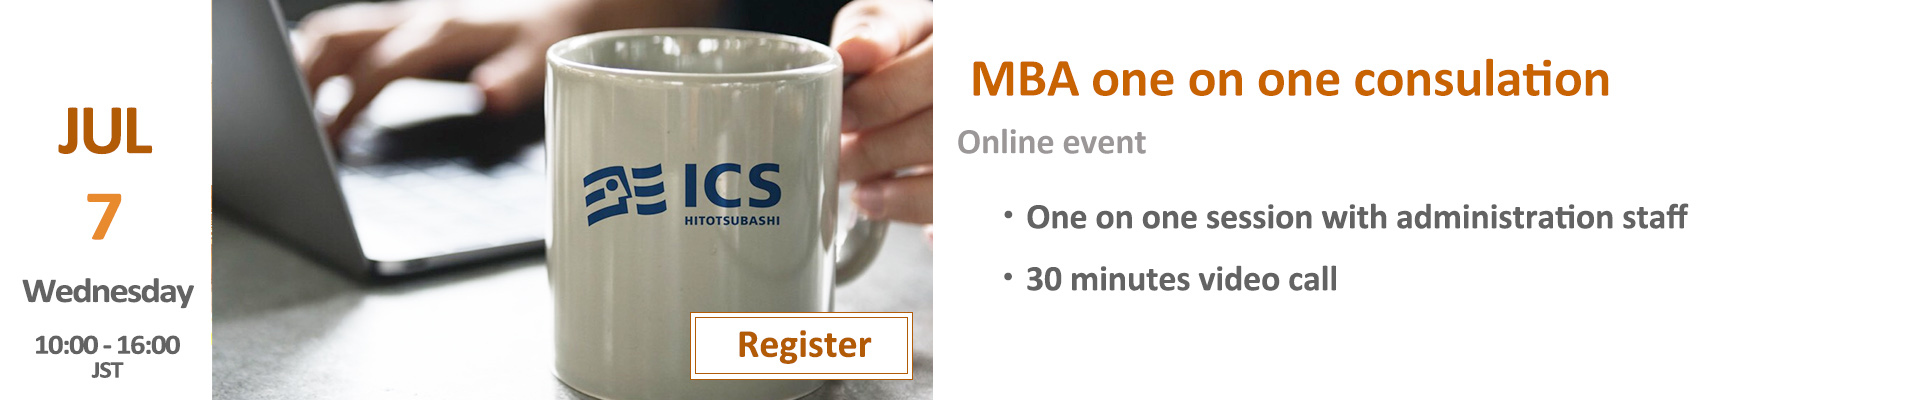 MBA One on one_Jul7